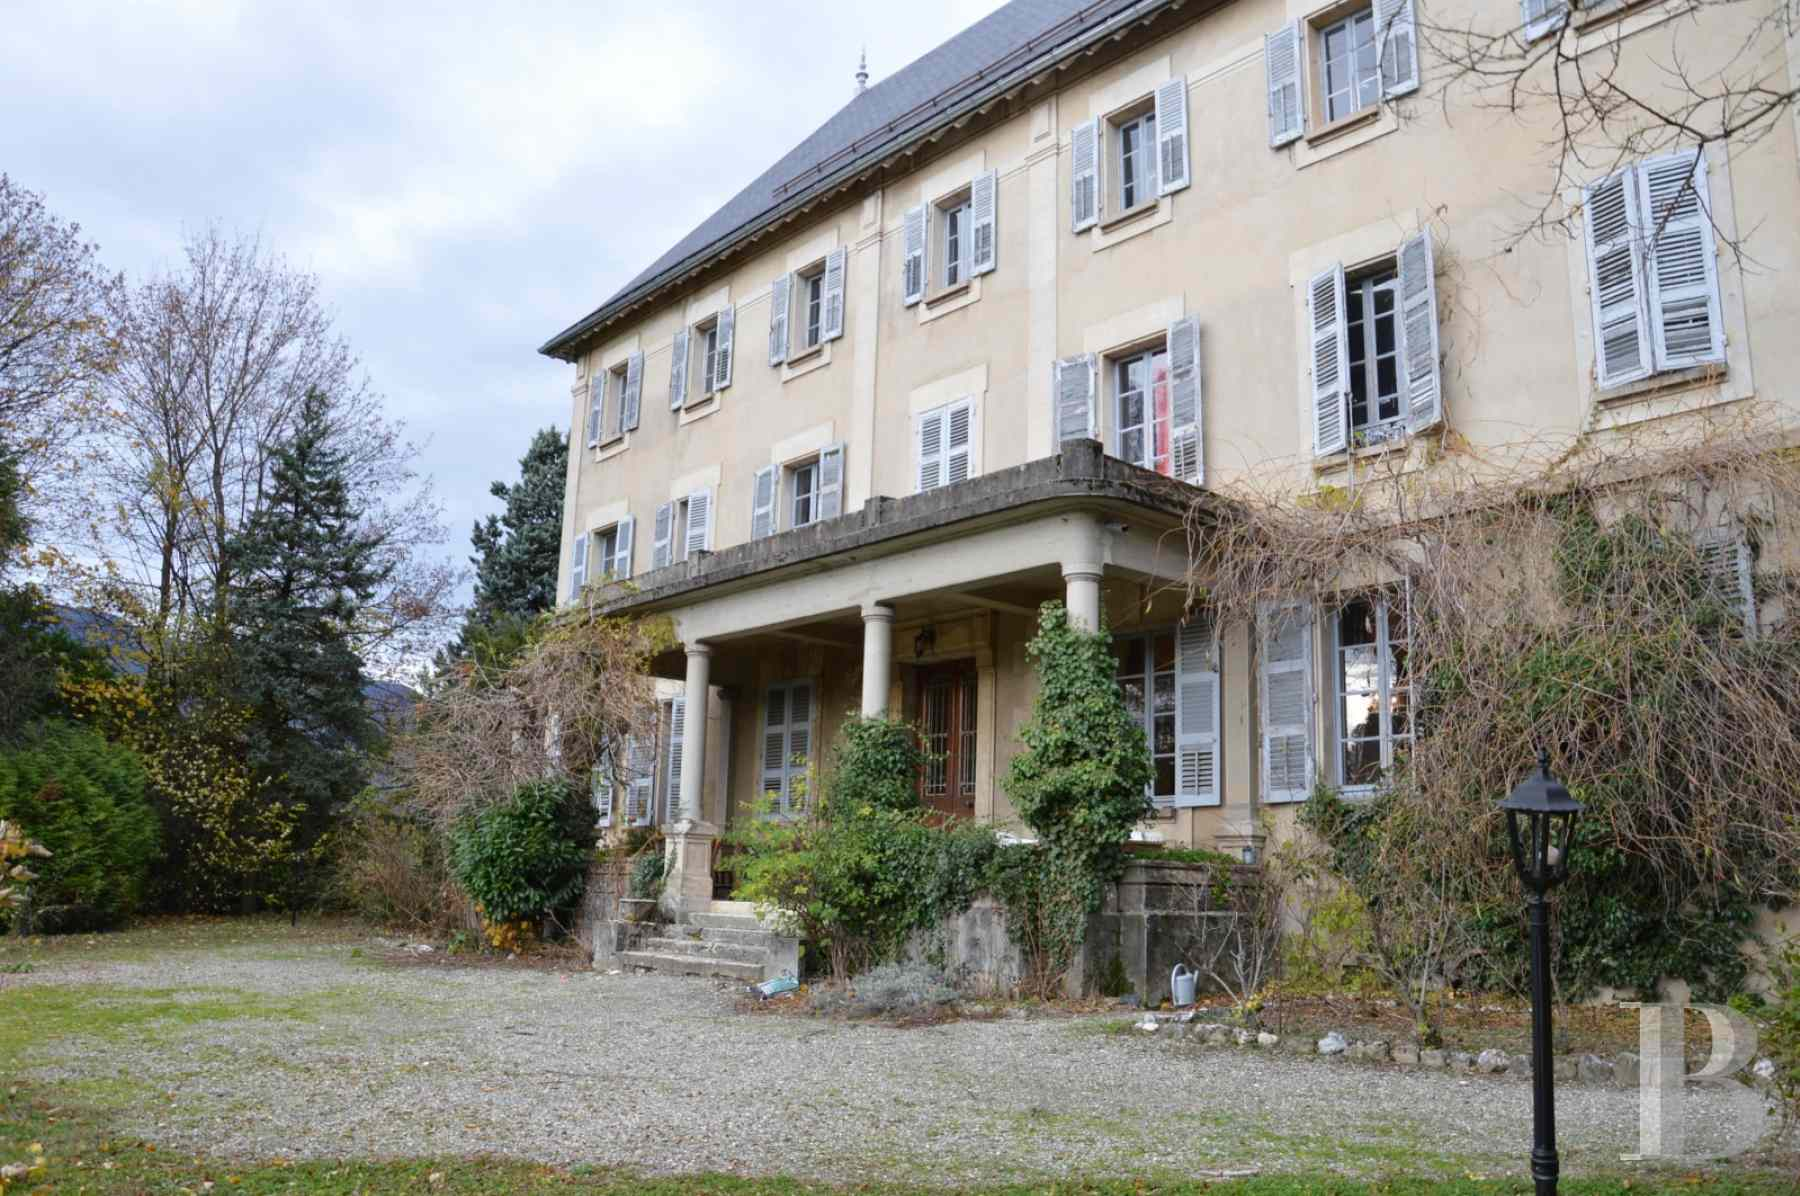 chateaux for sale France rhones alps chambery 18th - 4 zoom